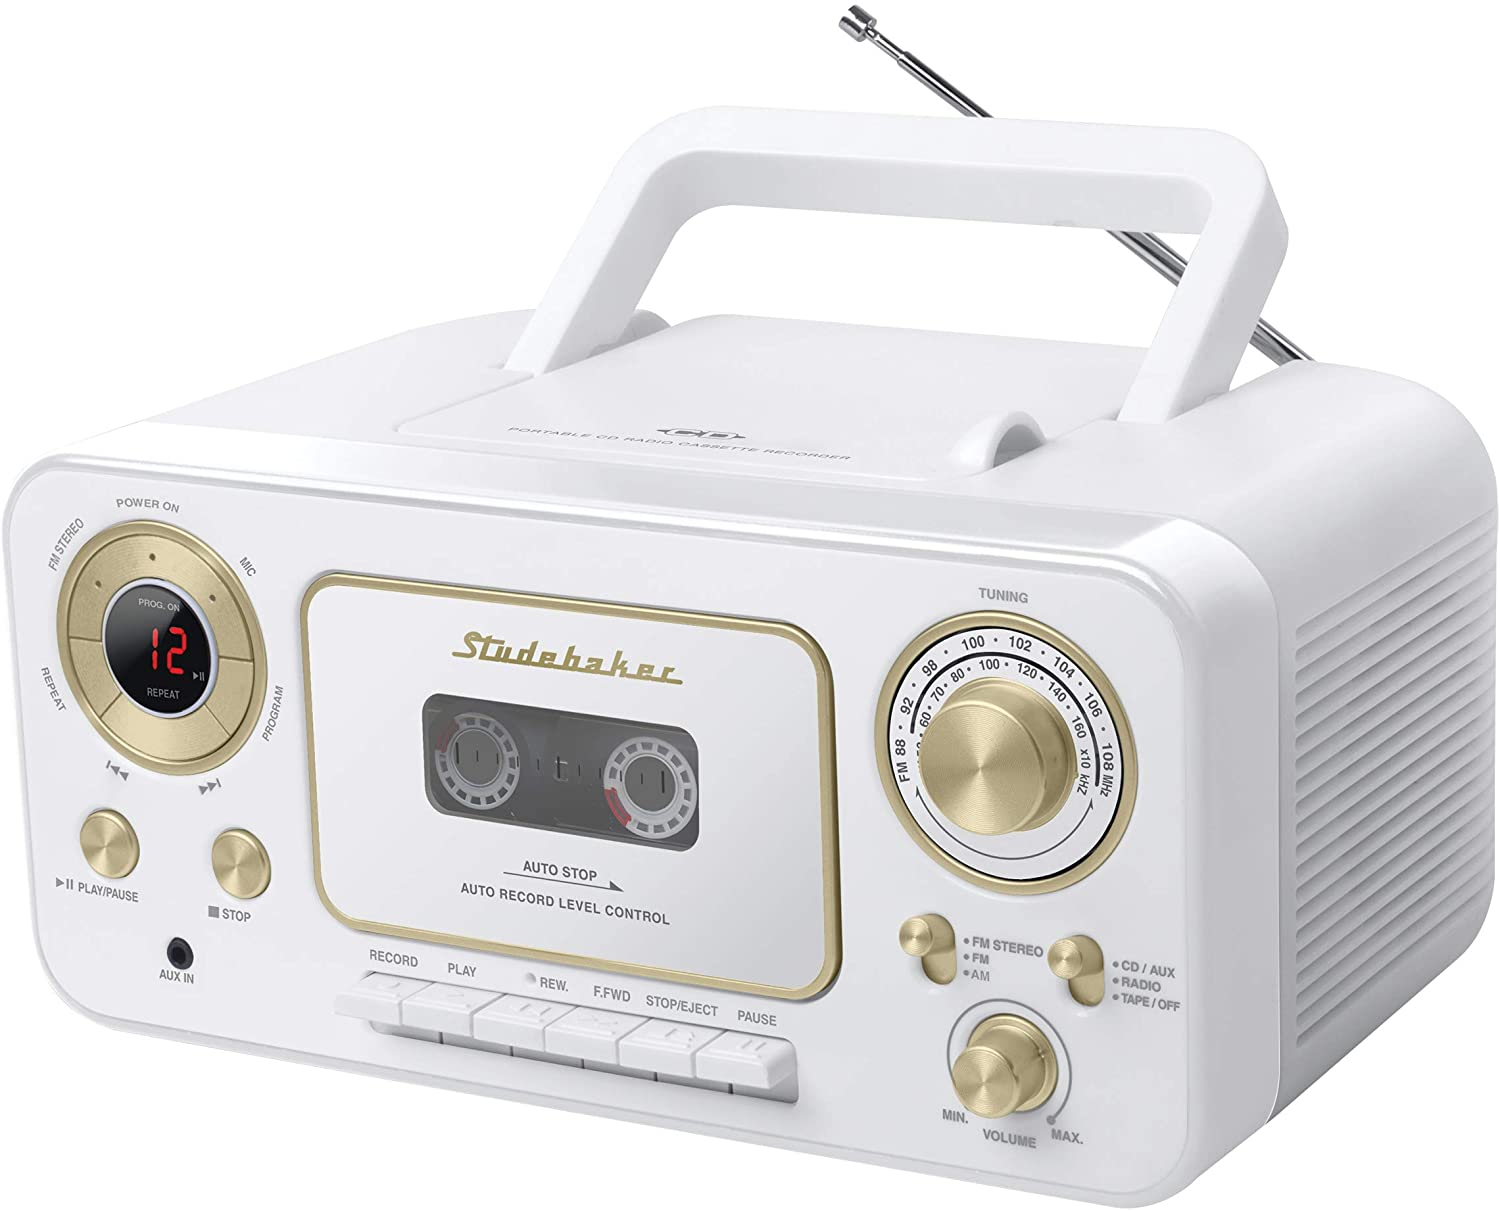 Studebaker SB2135WG Portable Stereo CD Player with AM/FM Radio and Cassette Player/Recorder in White and Gold